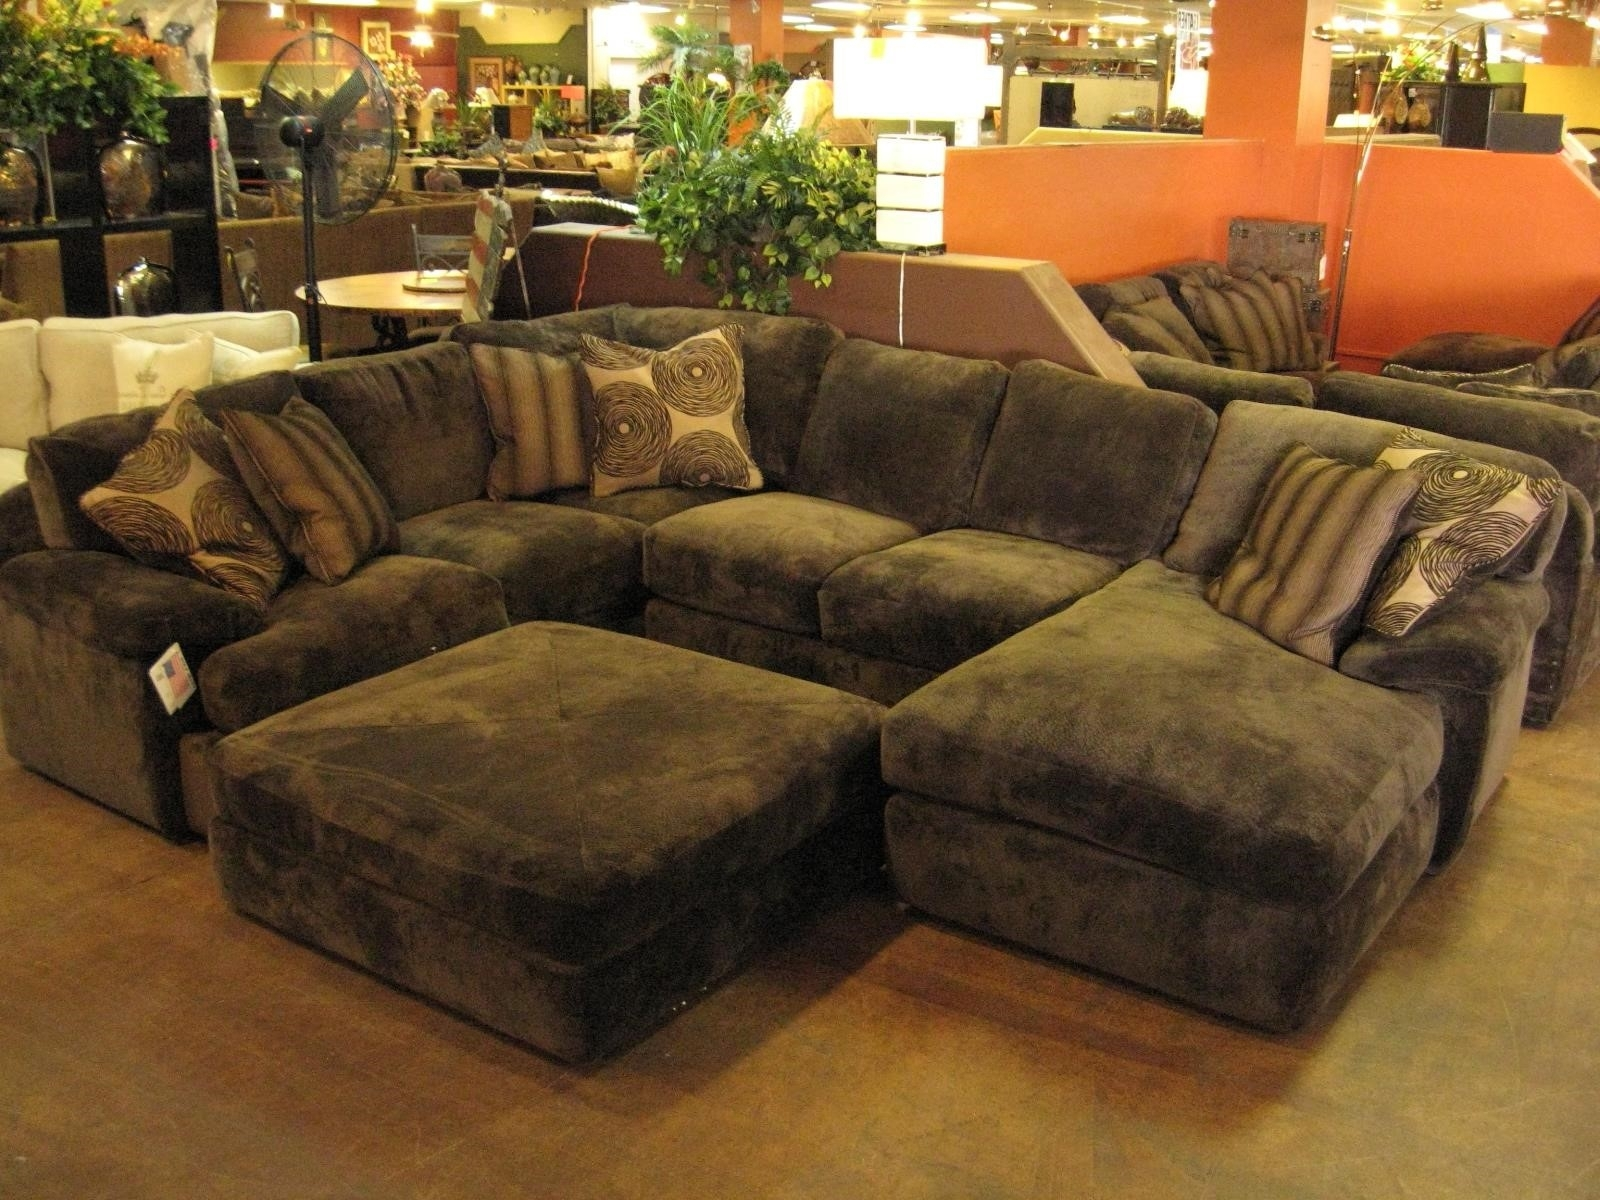 Good Large Sectional Sofa With Ottoman 97 For Sofas And Couches With Regard To Sectional Sofas With Oversized Ottoman (View 4 of 10)